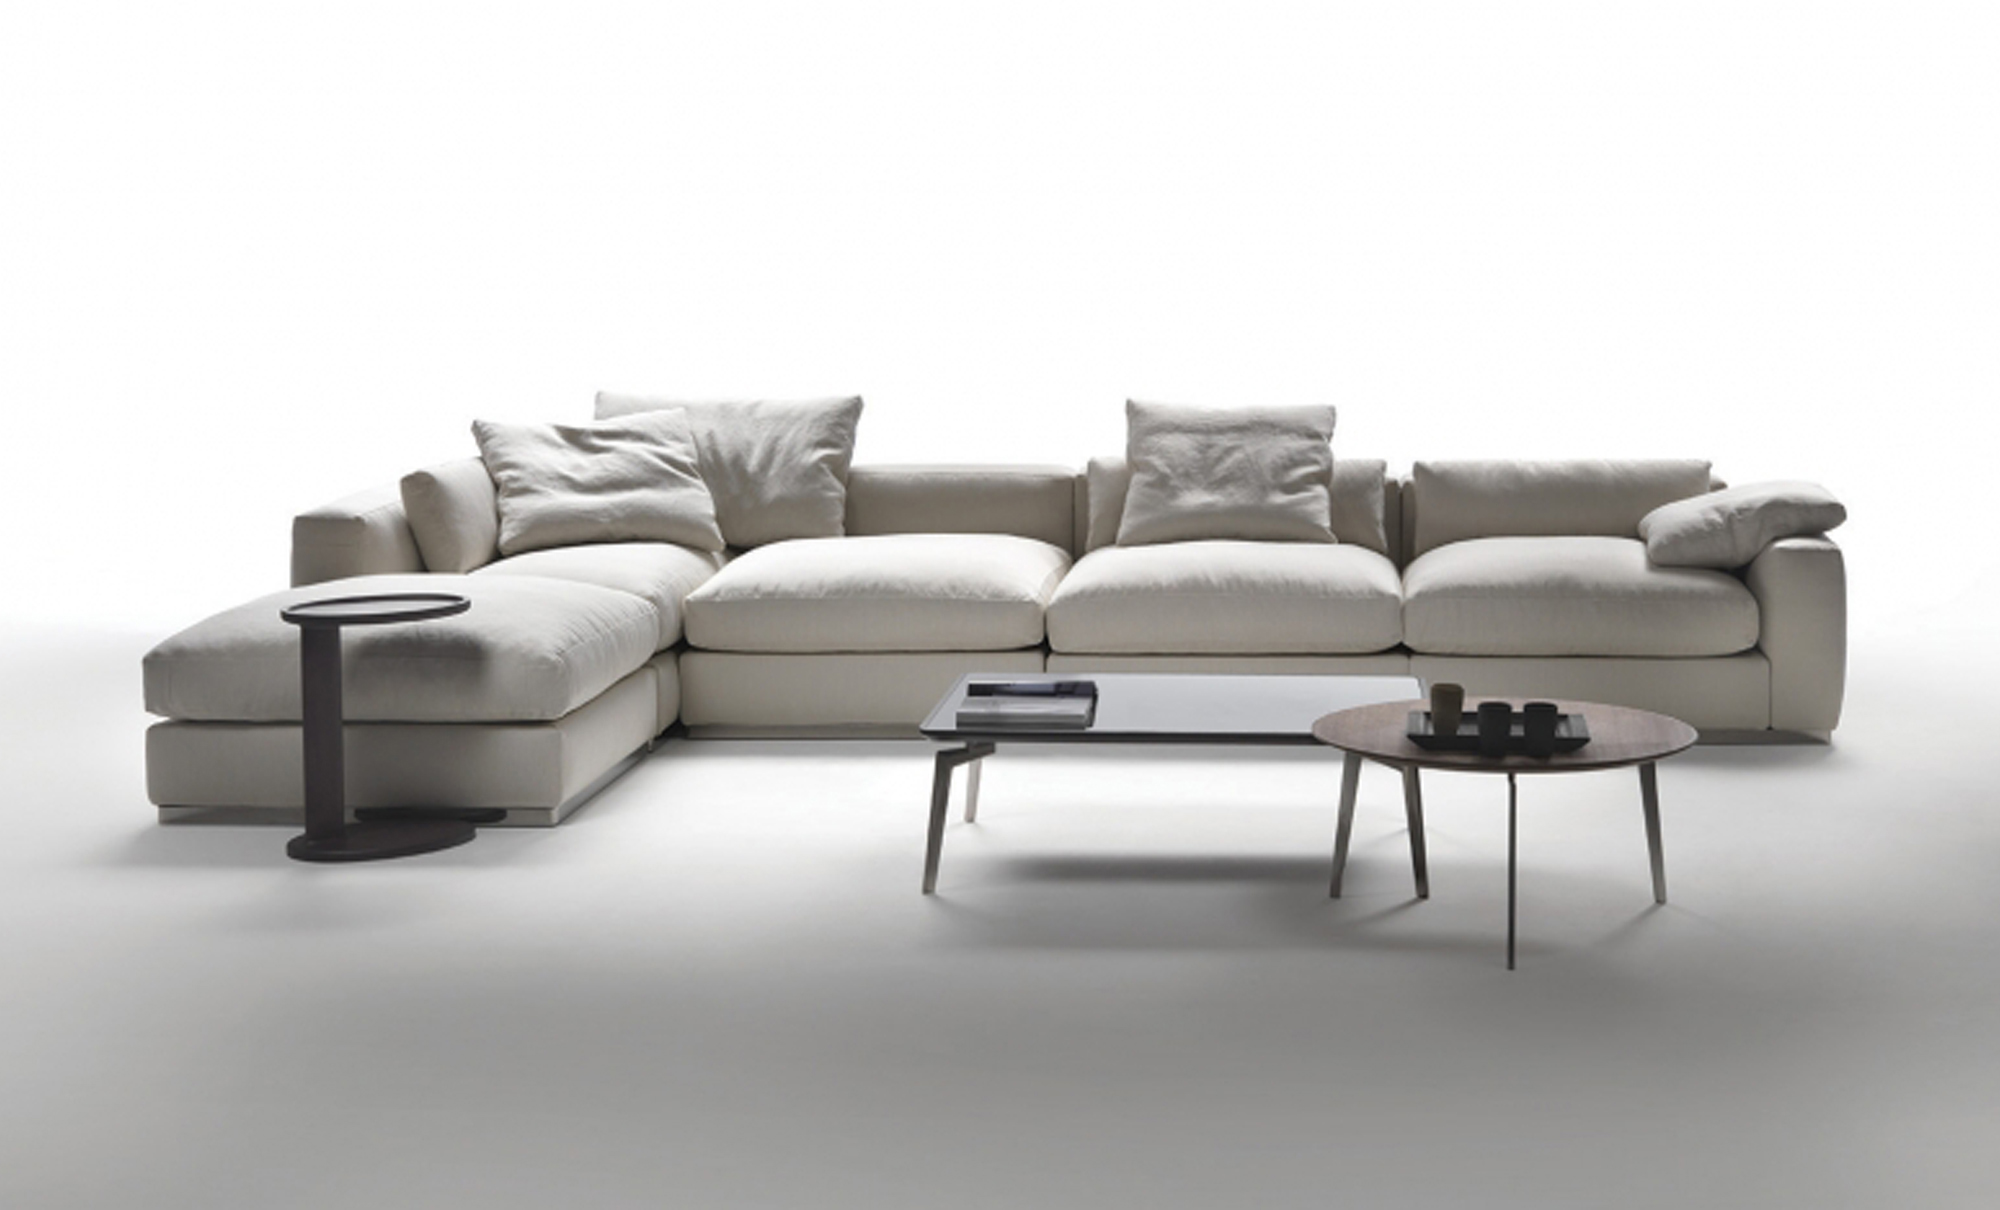 Couches And Sofas Beauty Sofas Fanuli Furniture